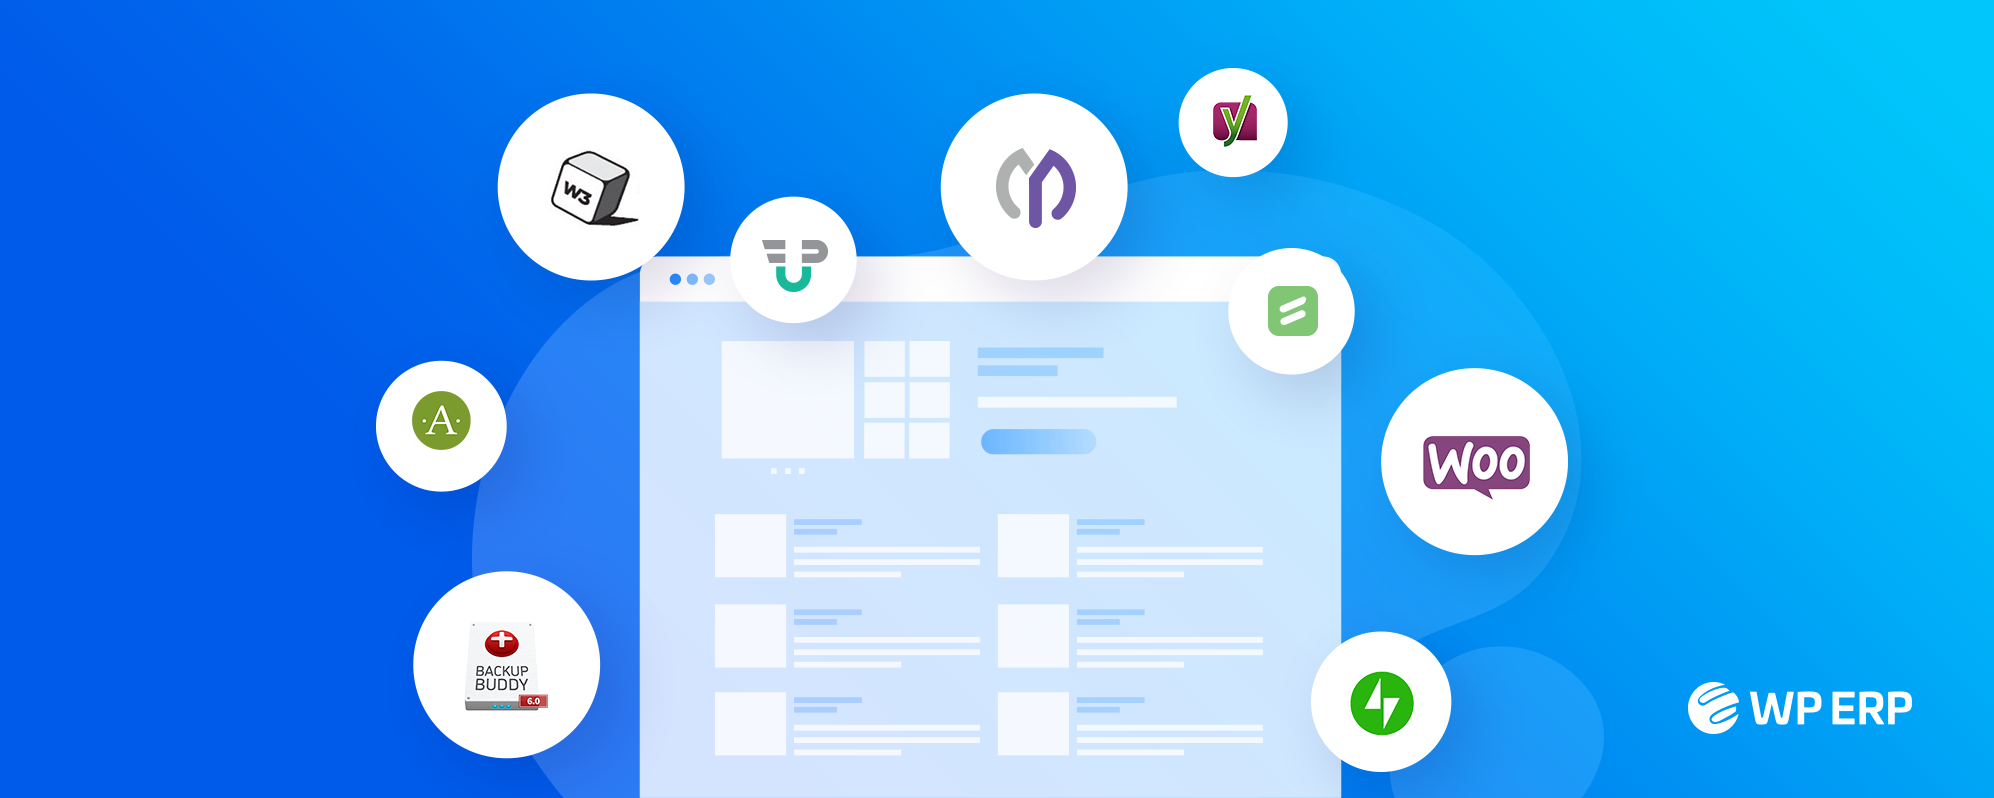 Must Have WordPress Plugins for Business Websites in 2018